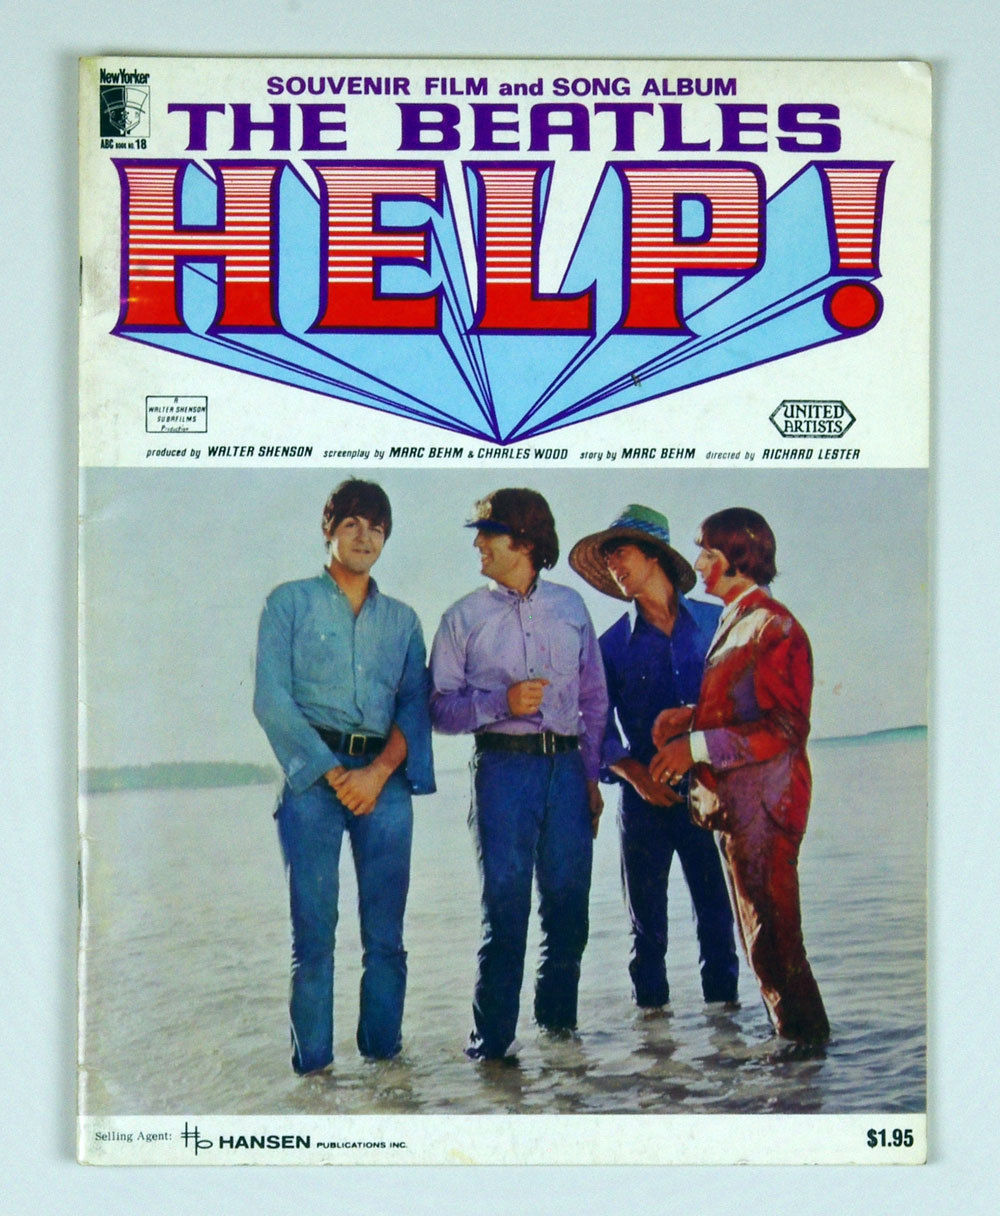 The Beatles song book HELP 1965 Souvenir Film and Song